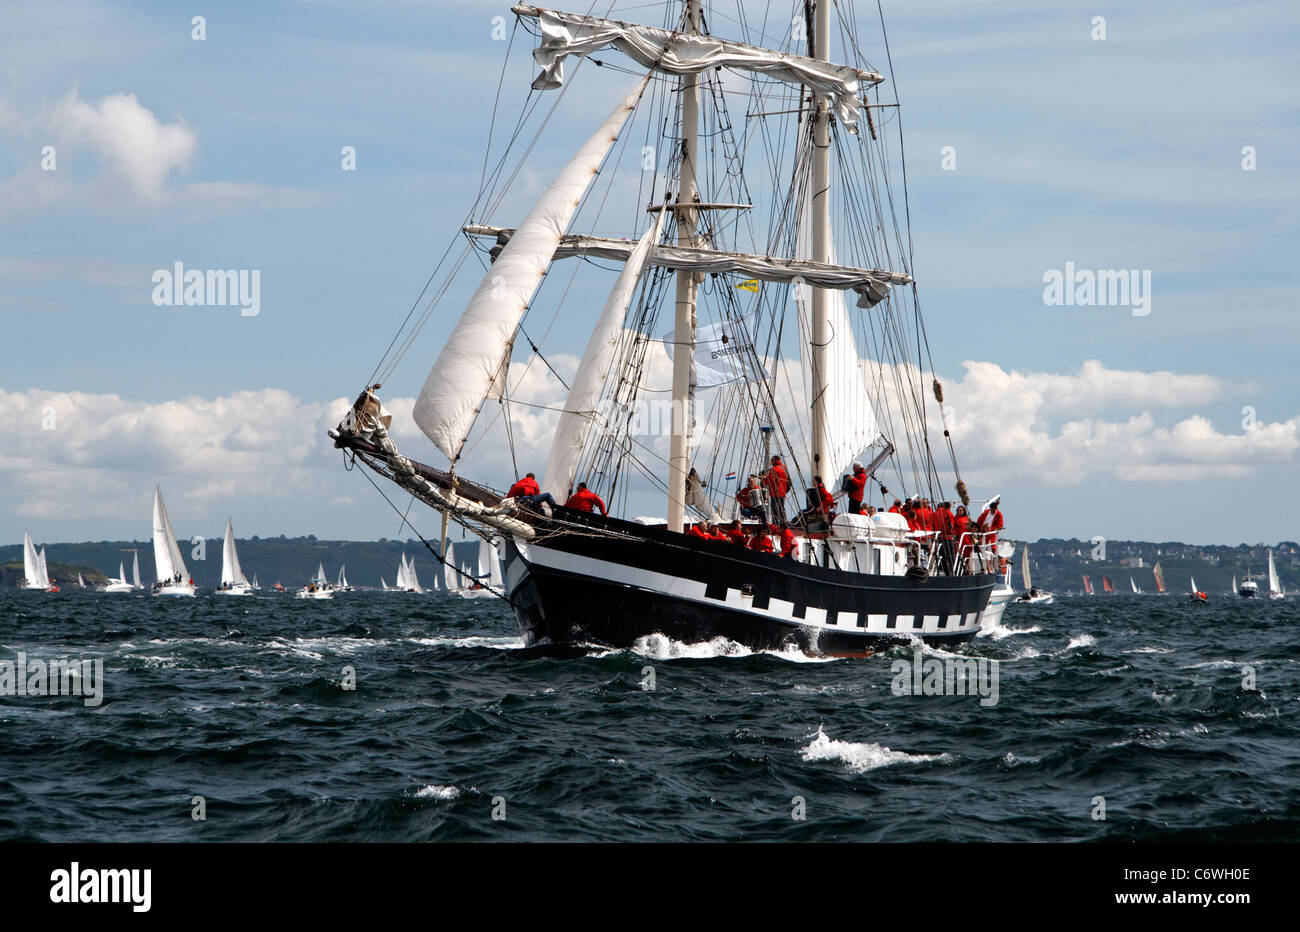 La Malouine : brigantine (St Malo, France), sailing in the bay of Brest (Finistère, Brittany, France). - Stock Image